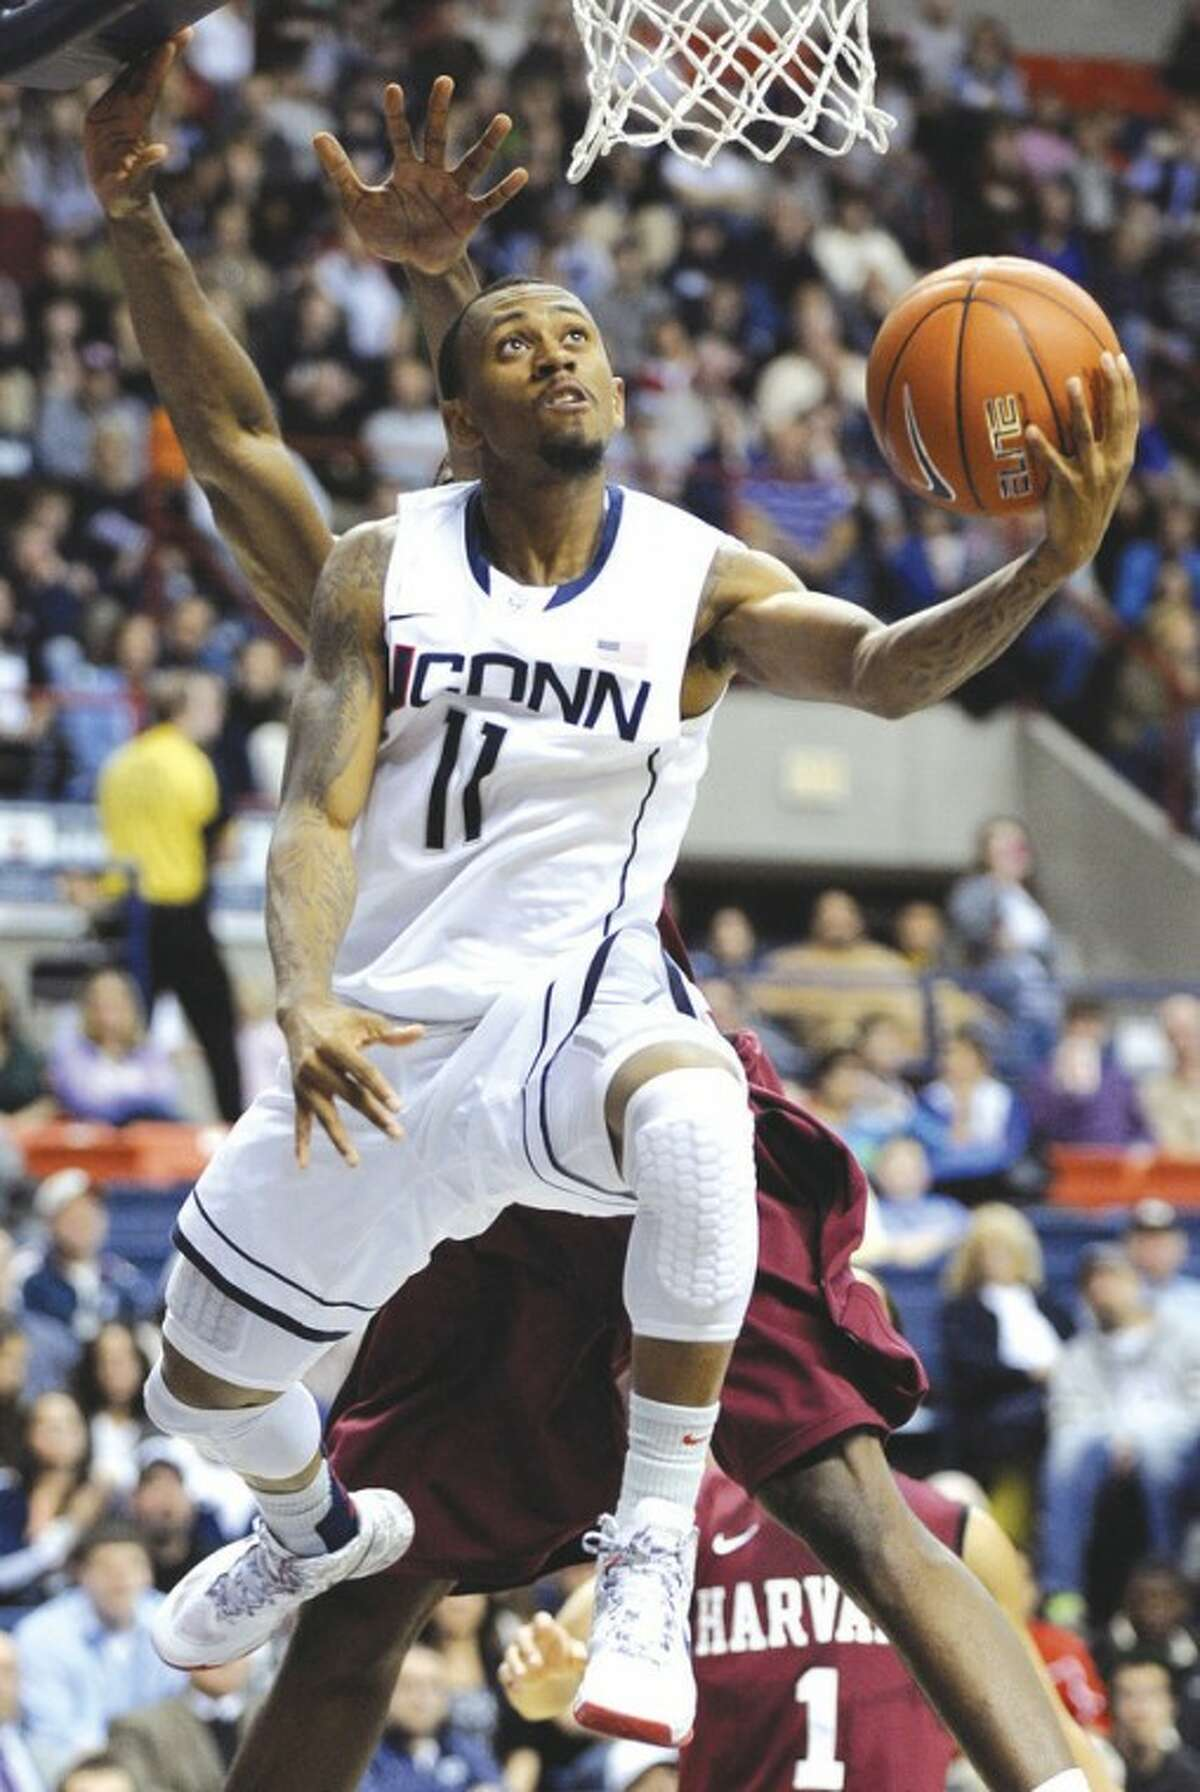 Connecticut's Ryan Boatright drives to the basket during the second half of his team's 57-49 victory over Harvard in an NCAA college basketball game in Storrs, Conn., Friday, Dec. 7, 2012. Boatright scored 16 points in the victory. (AP Photo/Fred Beckham)